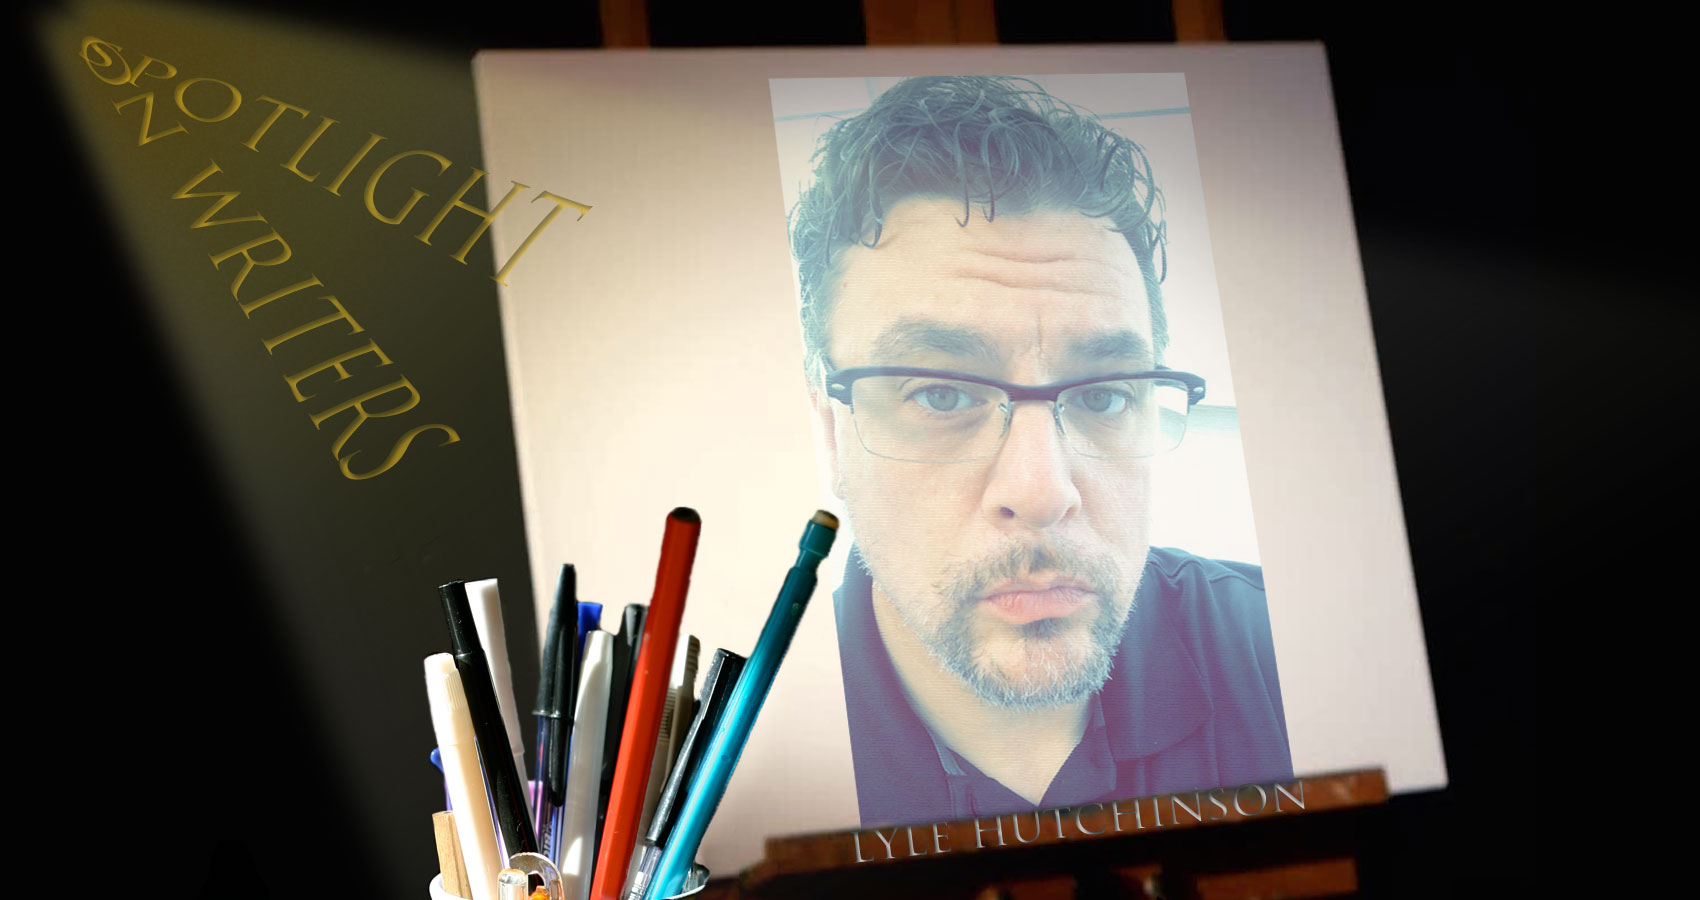 Spotlight On Writers - Lyle Hutchinson, interview at Spillwords.com